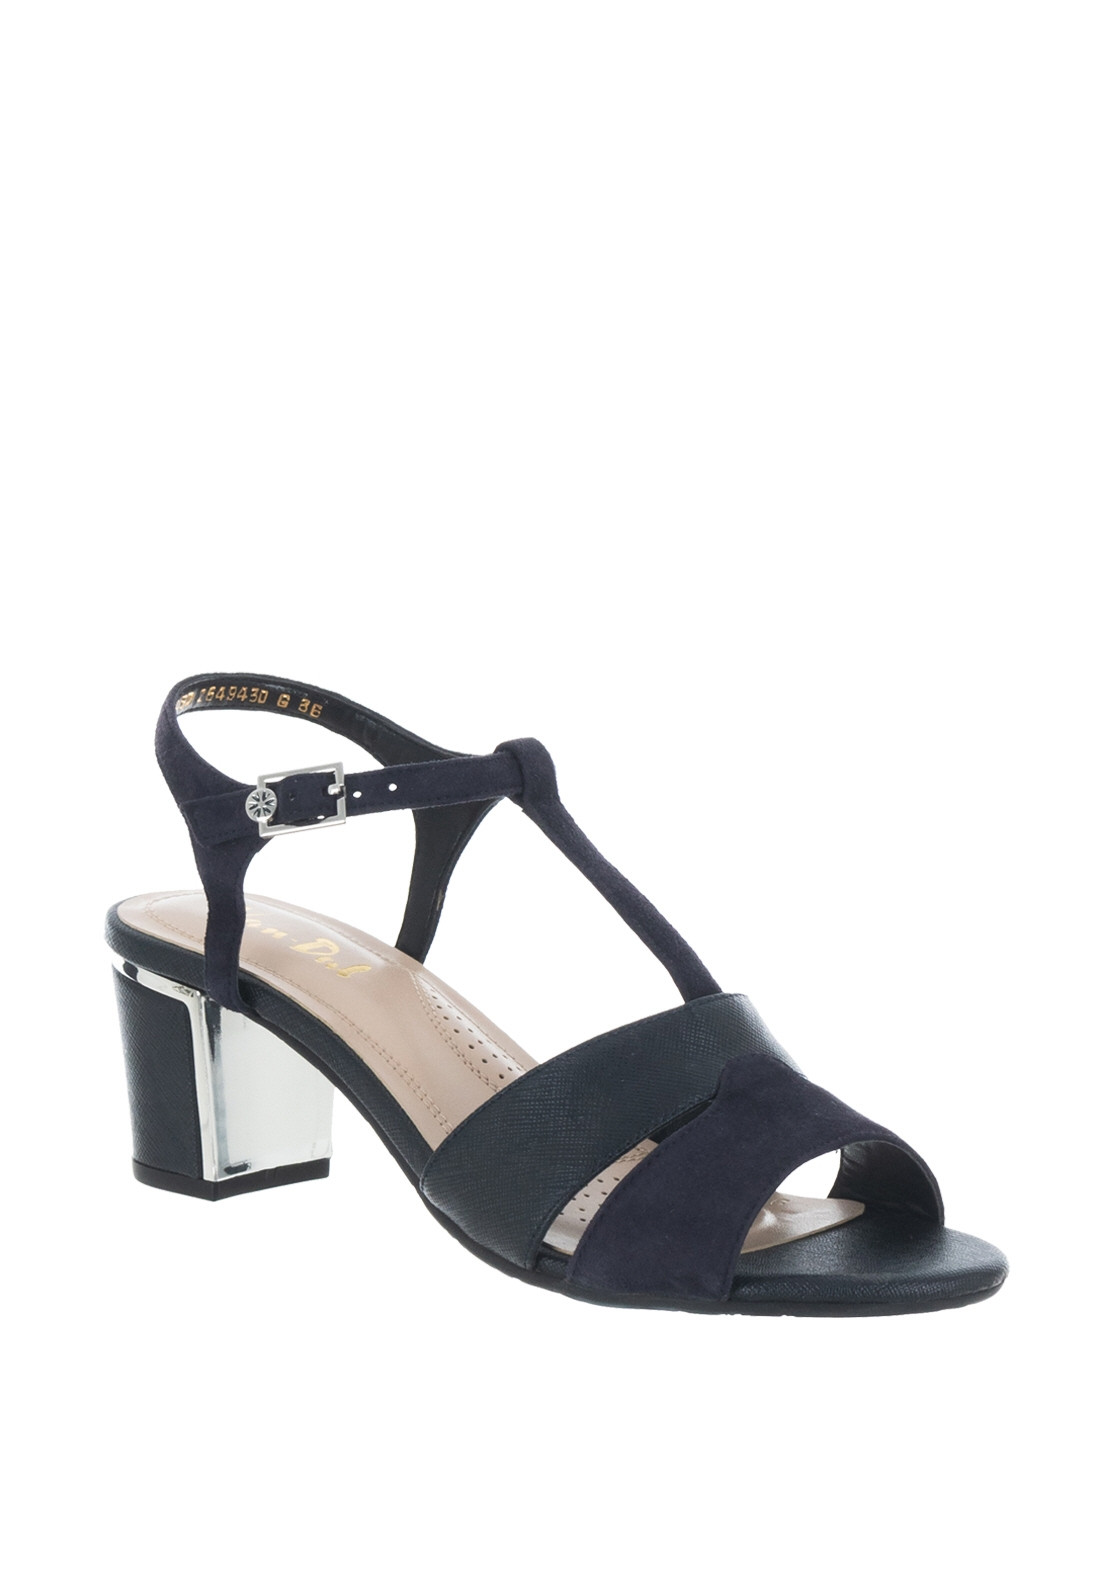 6a9cedca Van Dal Forester Suede Shimmer Block heel Sandals, Navy. Be the first to  review this product